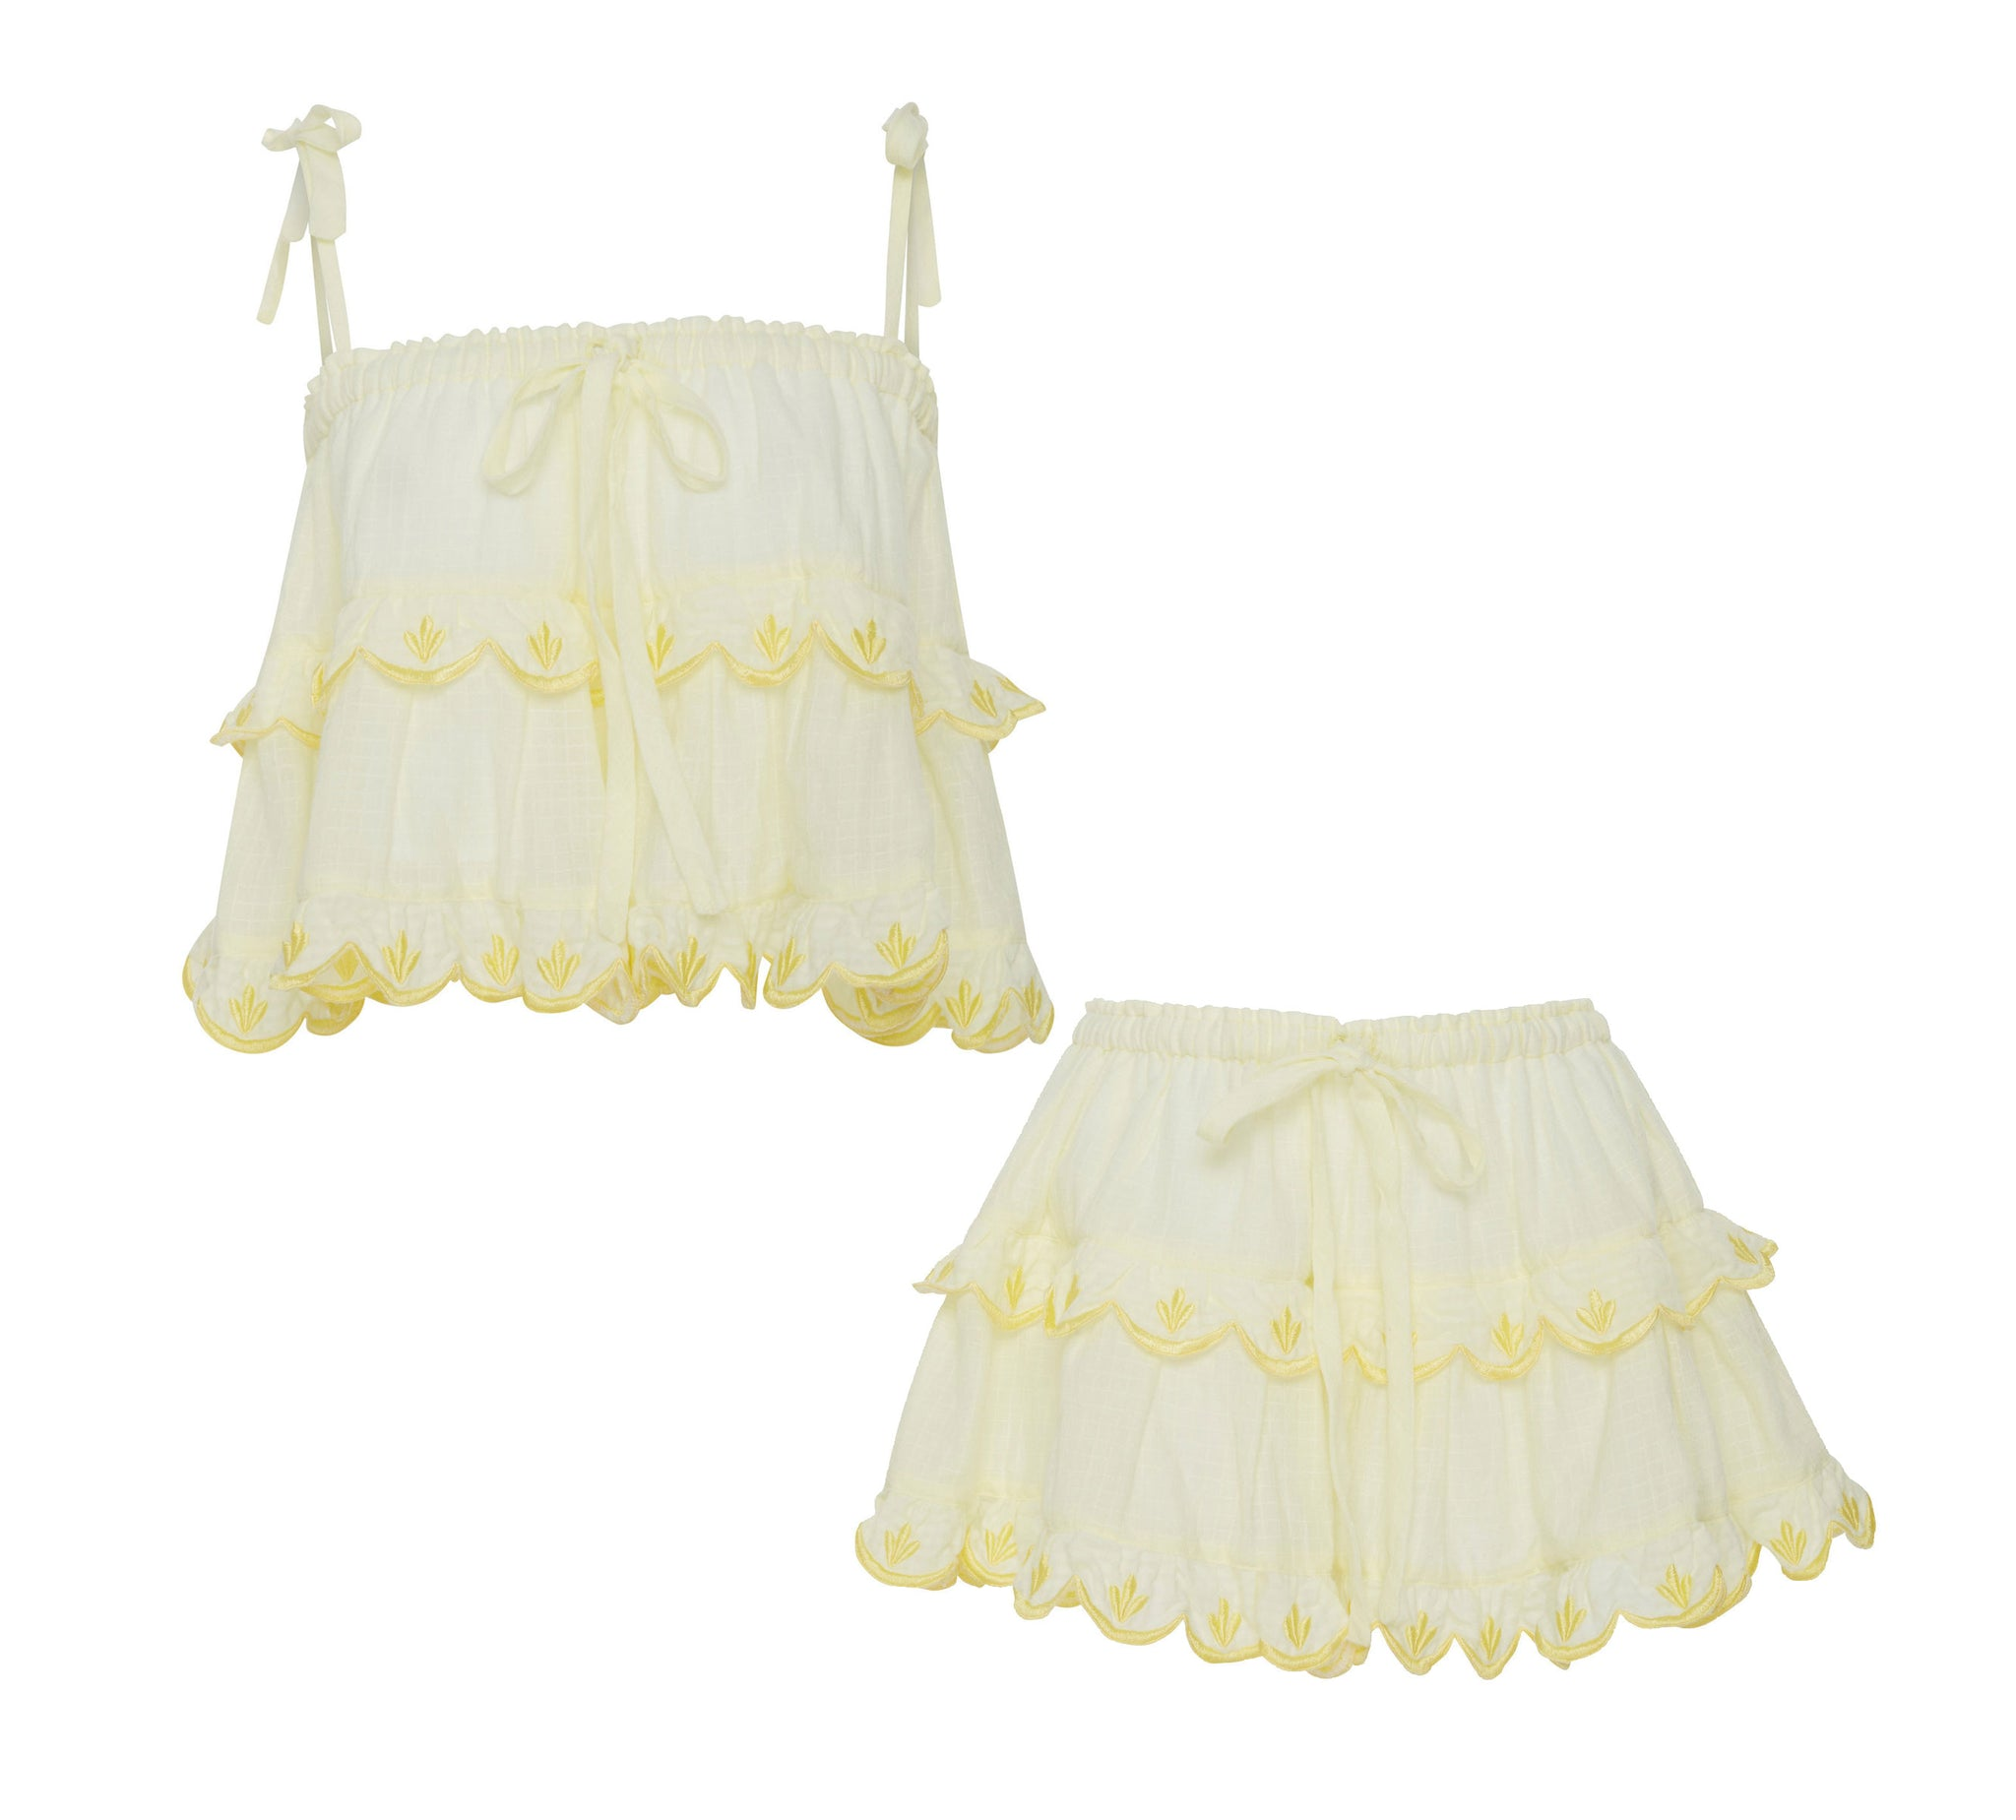 Stella 2 in 1 Top & Skirt in Yellow